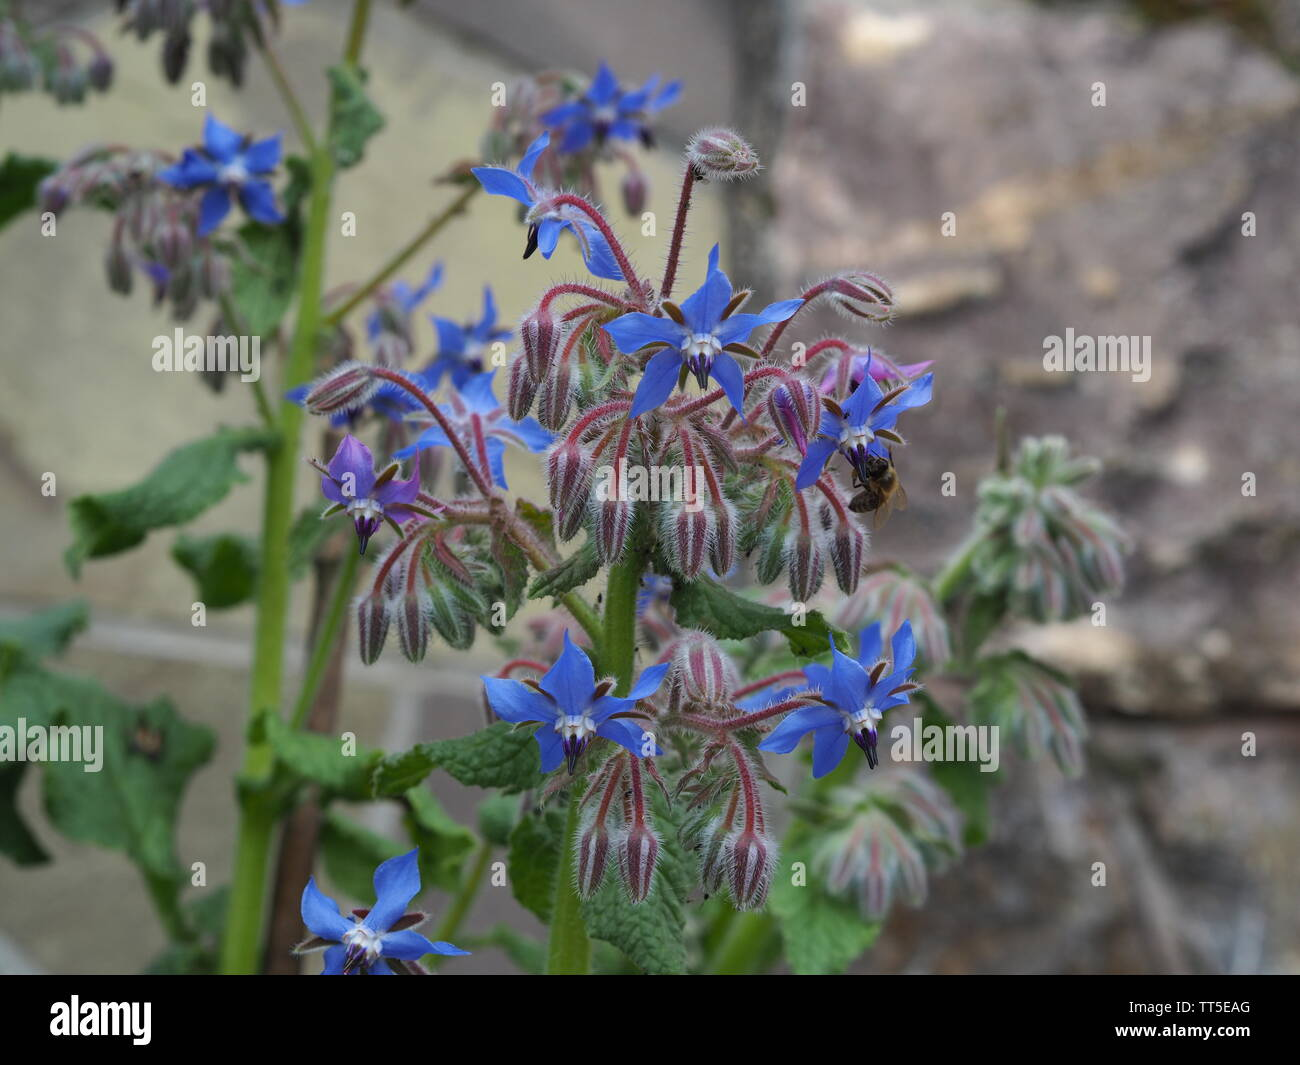 Close-up of a Borago officinalis in front of a stone wall next to a greenhouse - Stock Image